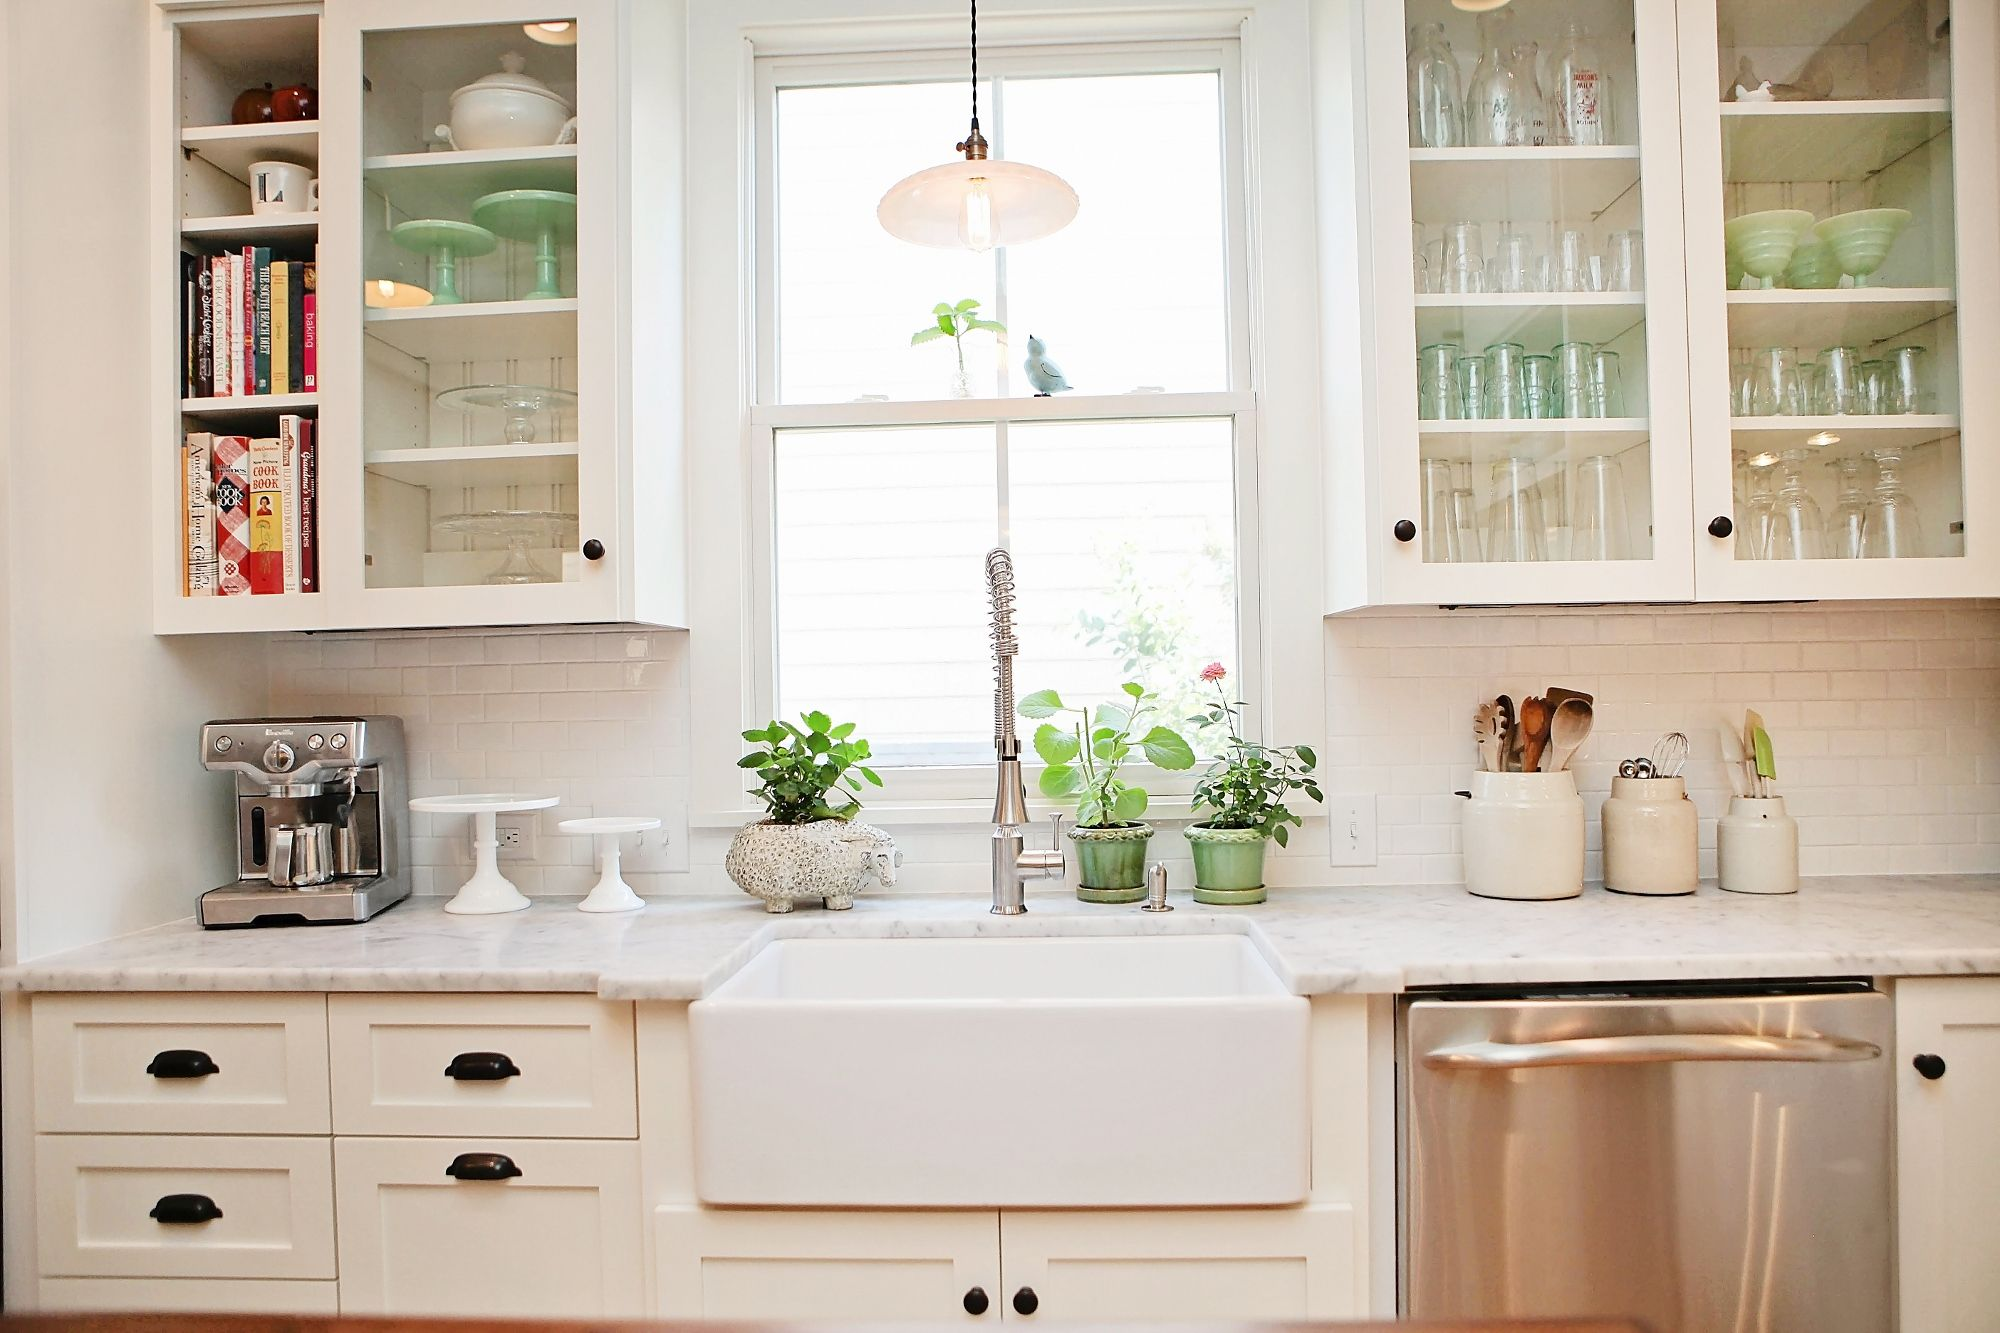 Appealing White Kitchen Subway Backsplash As Well As White